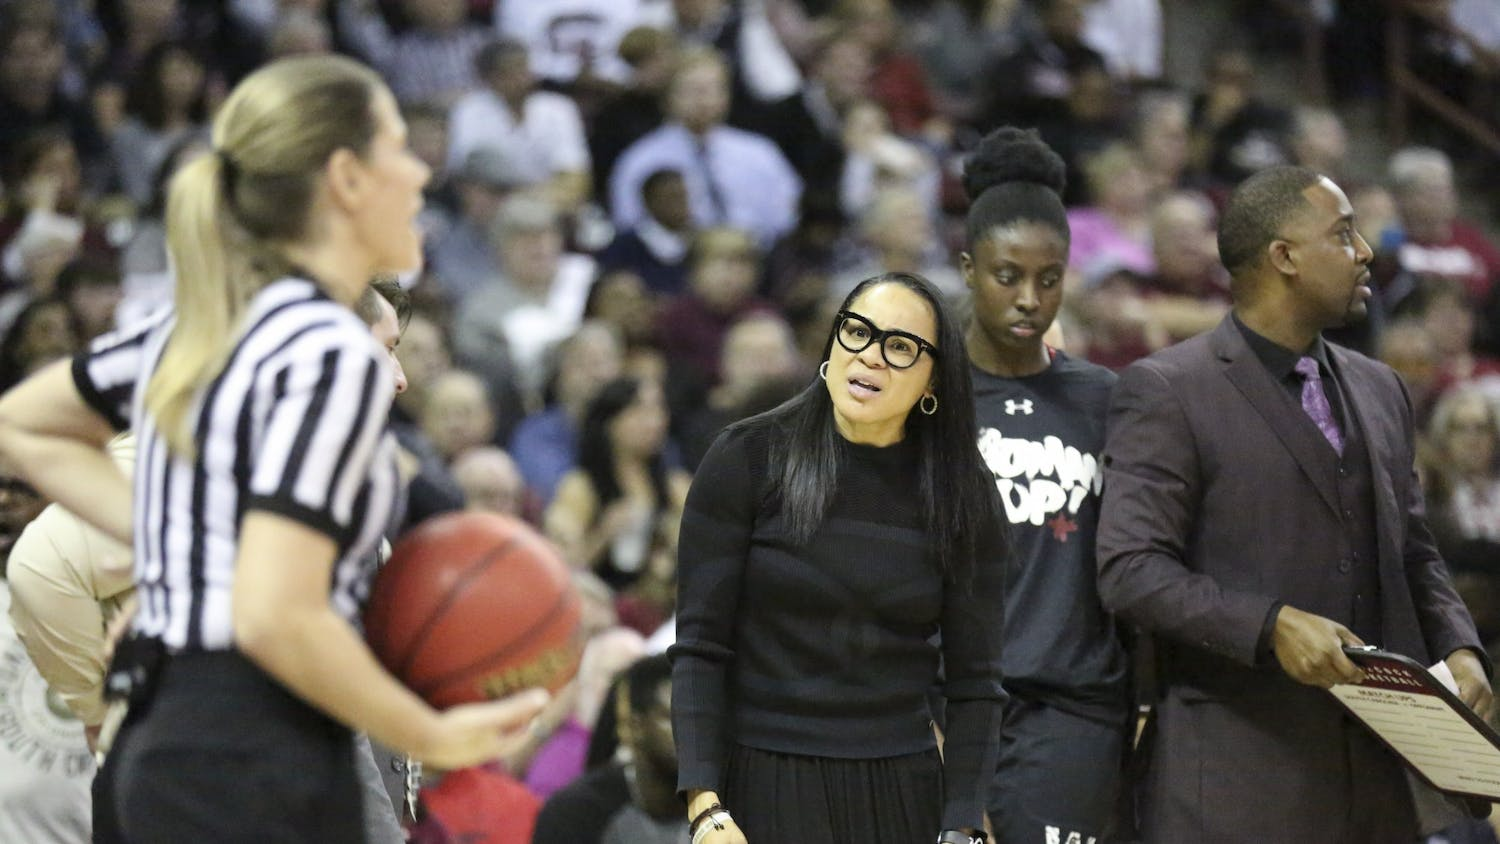 Gamecock head coach Dawn Staley looks at the referee after a call that was just made. Staley has been the Gamecocks' head coach for 11 seasons.